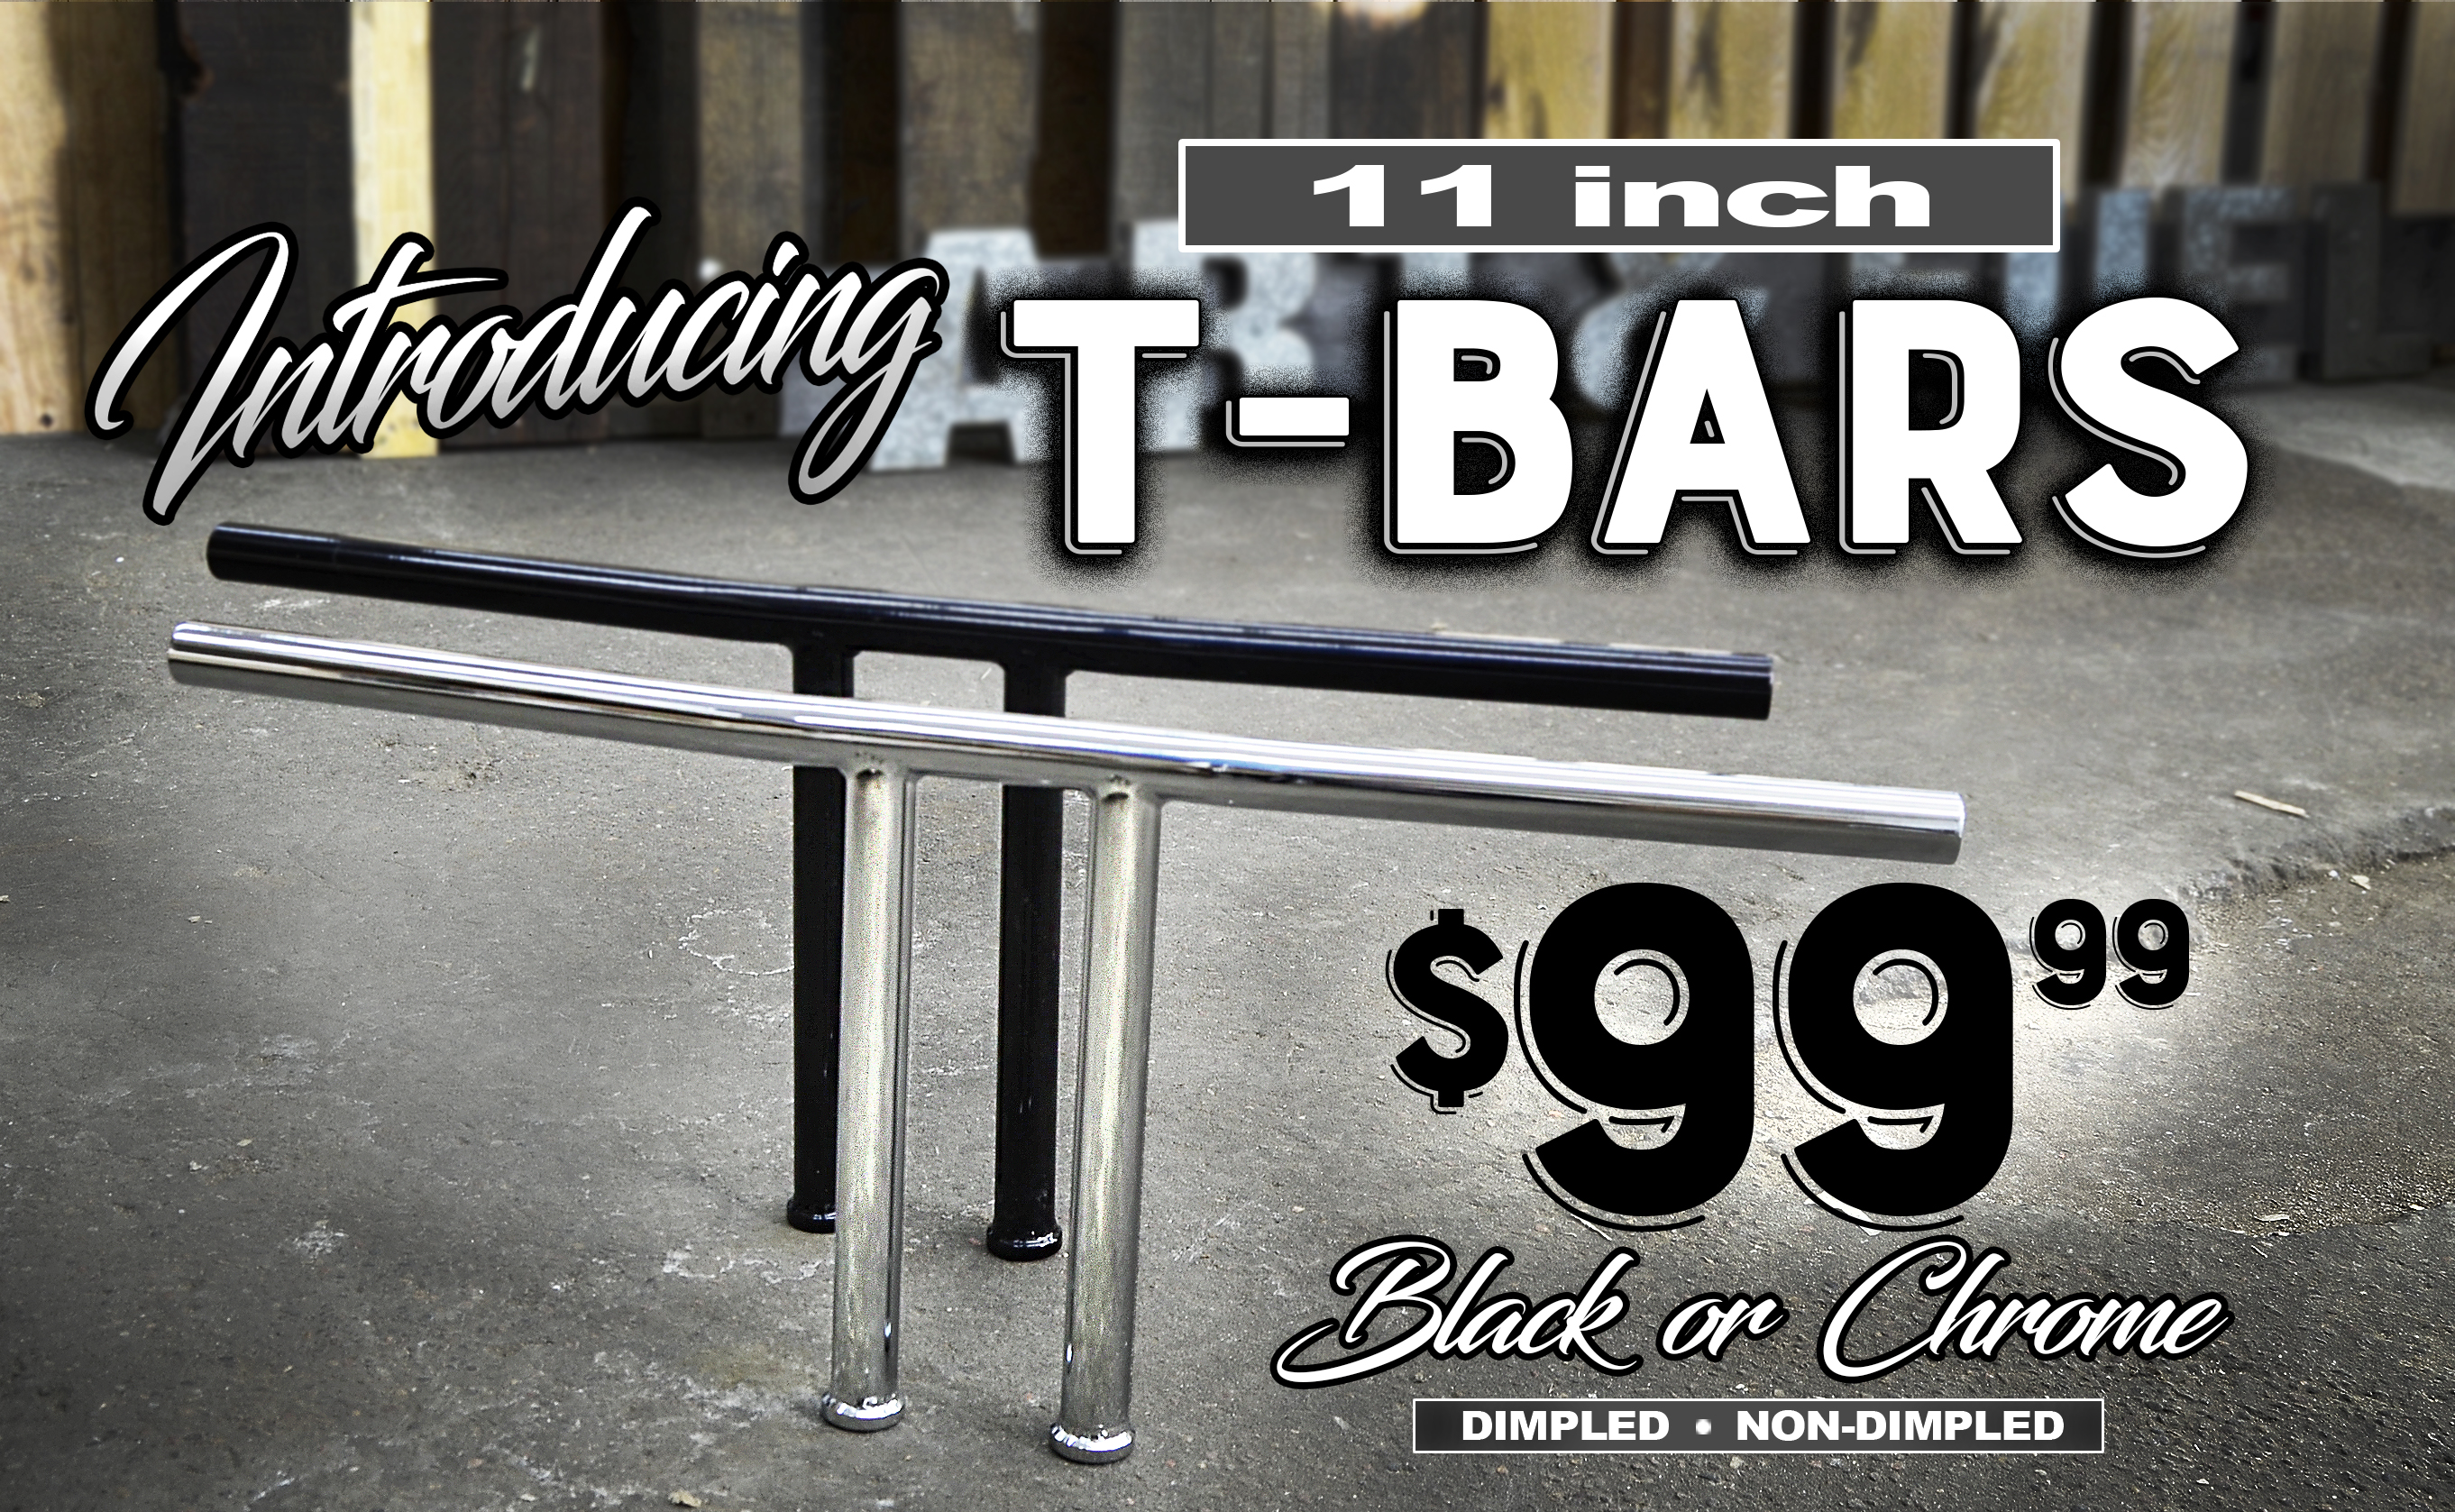 Introducing Throttle Addiction's 11-inch T-Bars for Harley Davidson Triple Trees